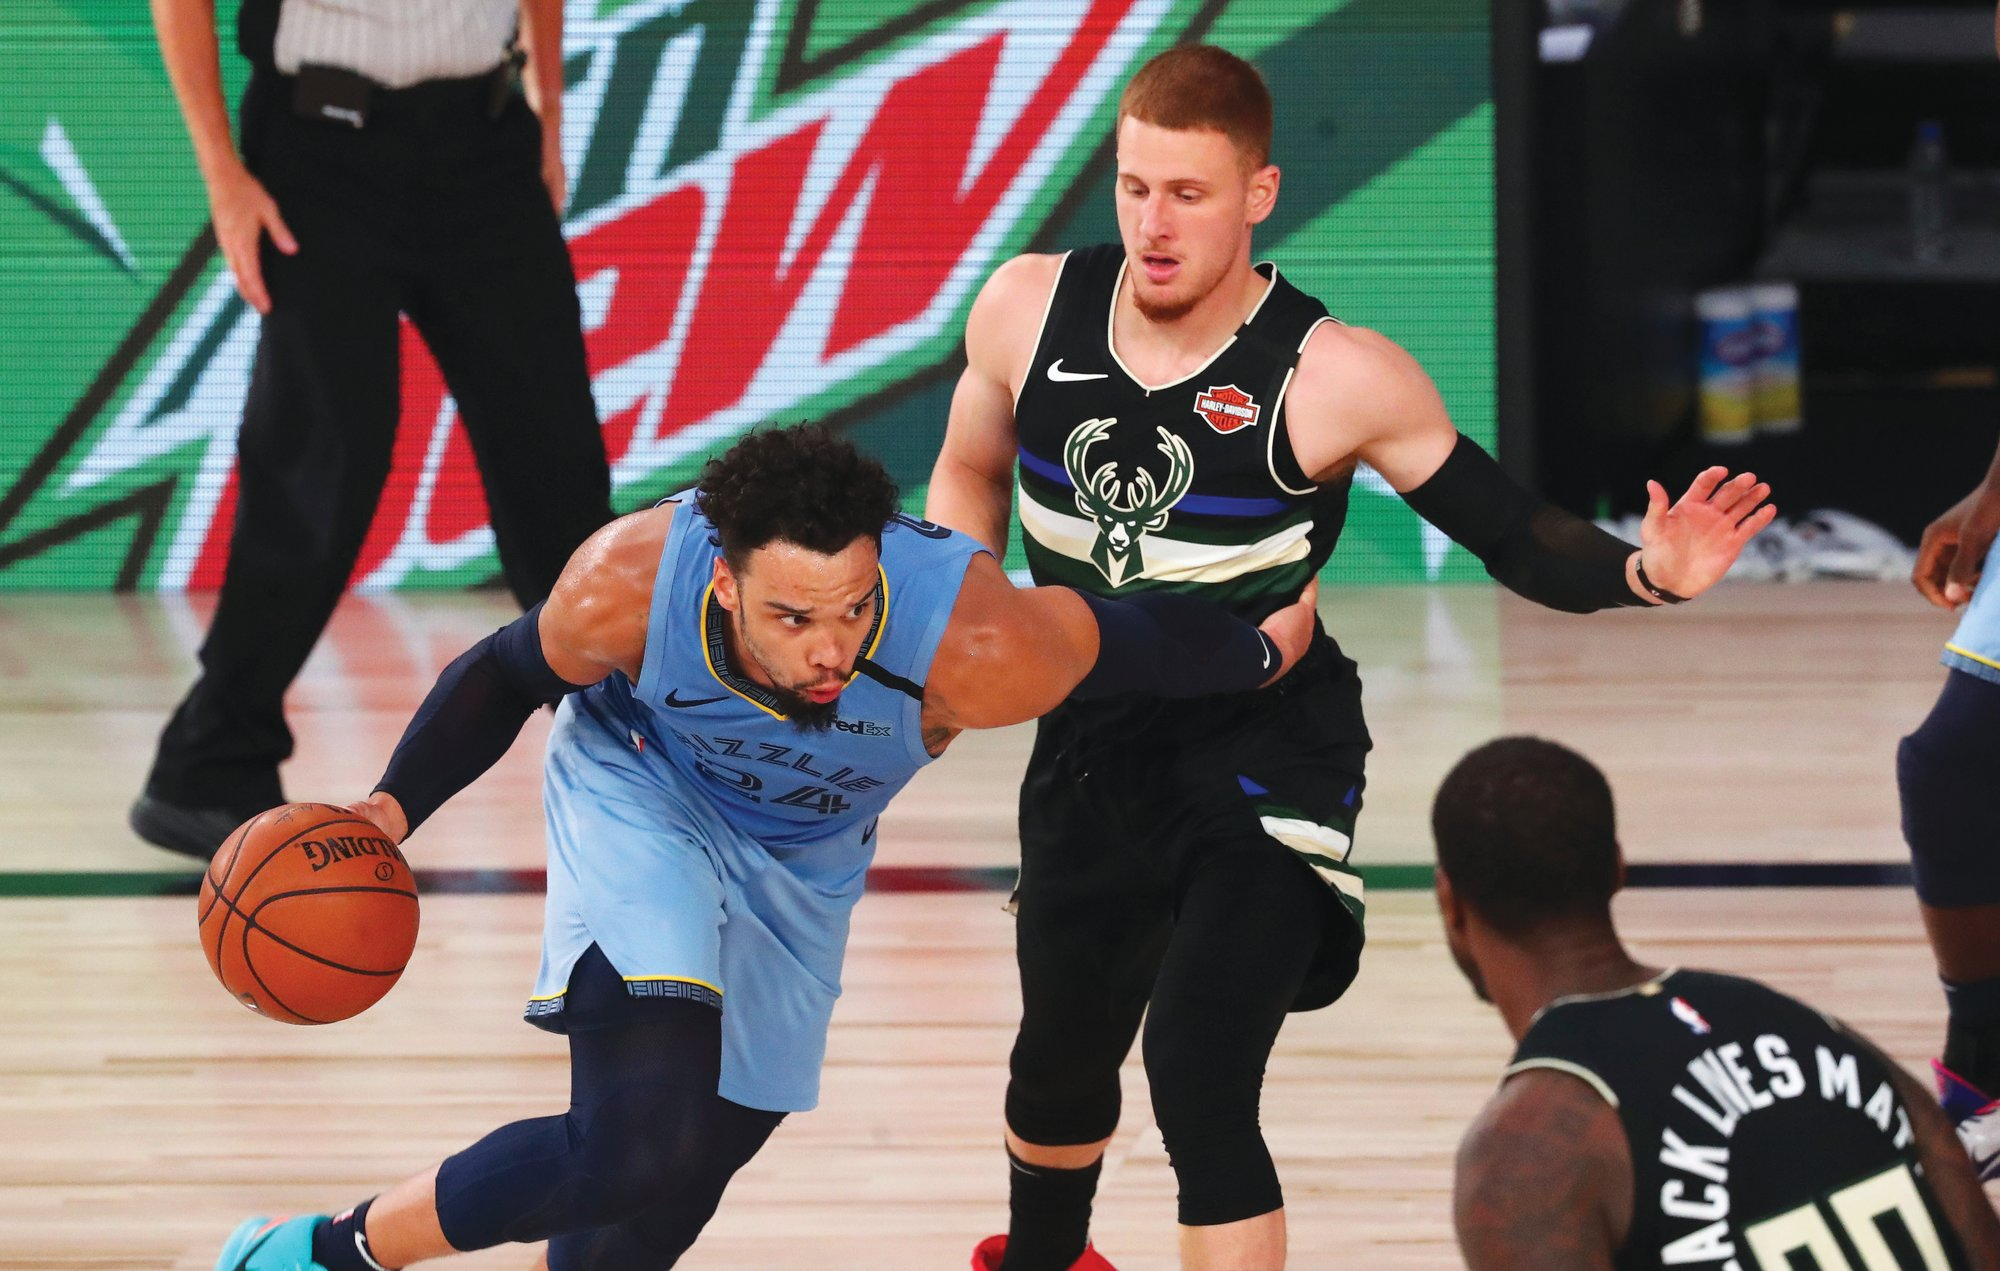 Memphis guard Dillon Brooks (24) drives against Milwaukee Bucks guard Donte DiVincenzo, top right, during the Grizzlies' 119-106 win on Thursday in Lake Buena Vista, Florida.